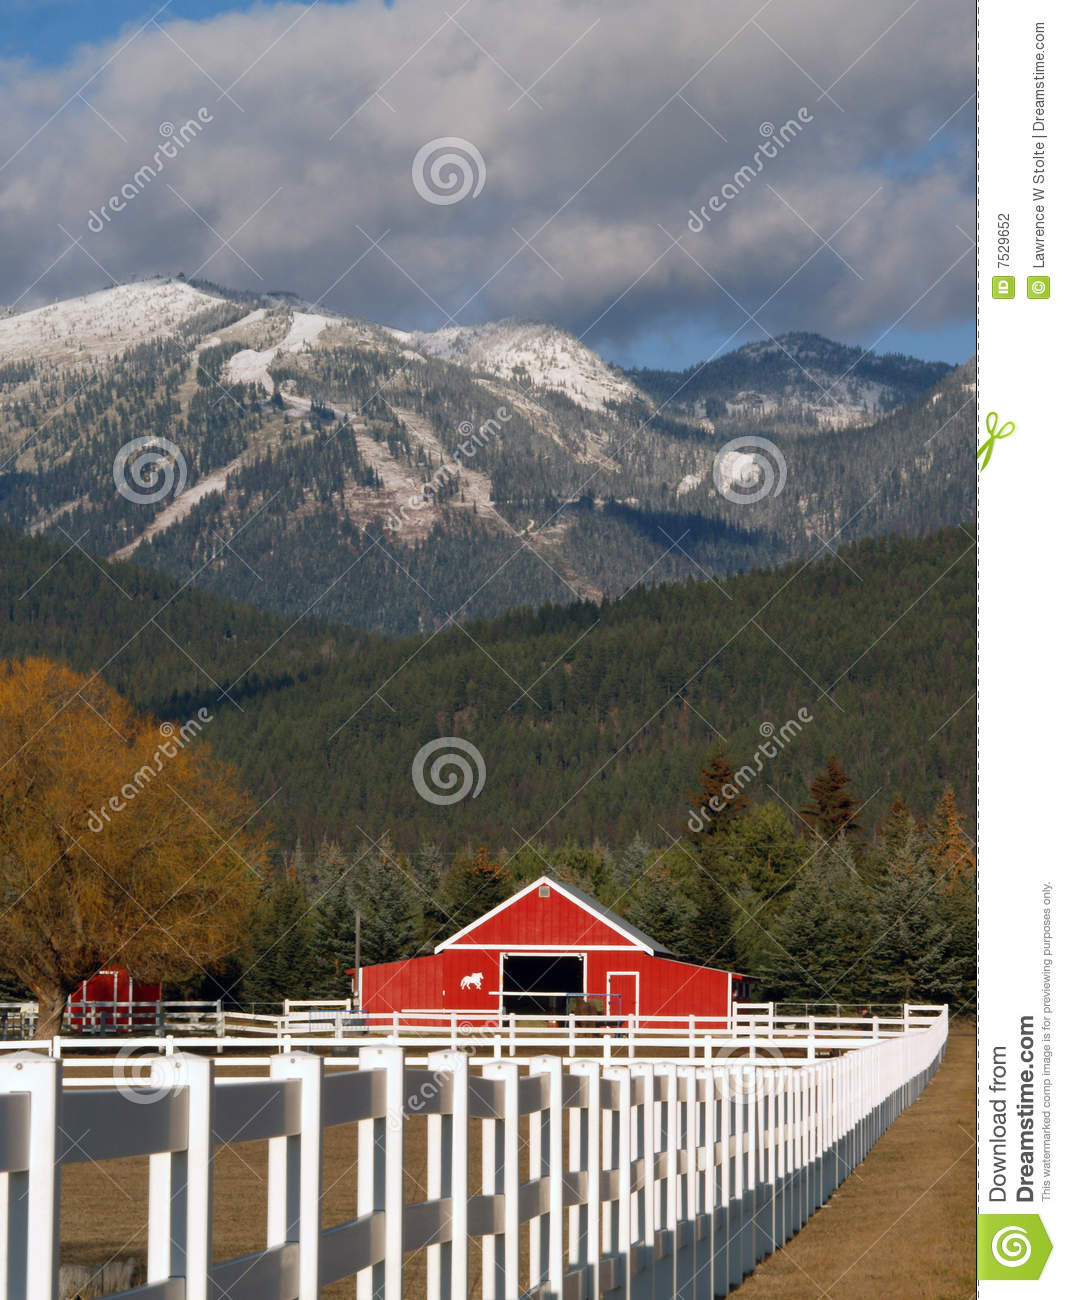 Horse Ranch and Mountains